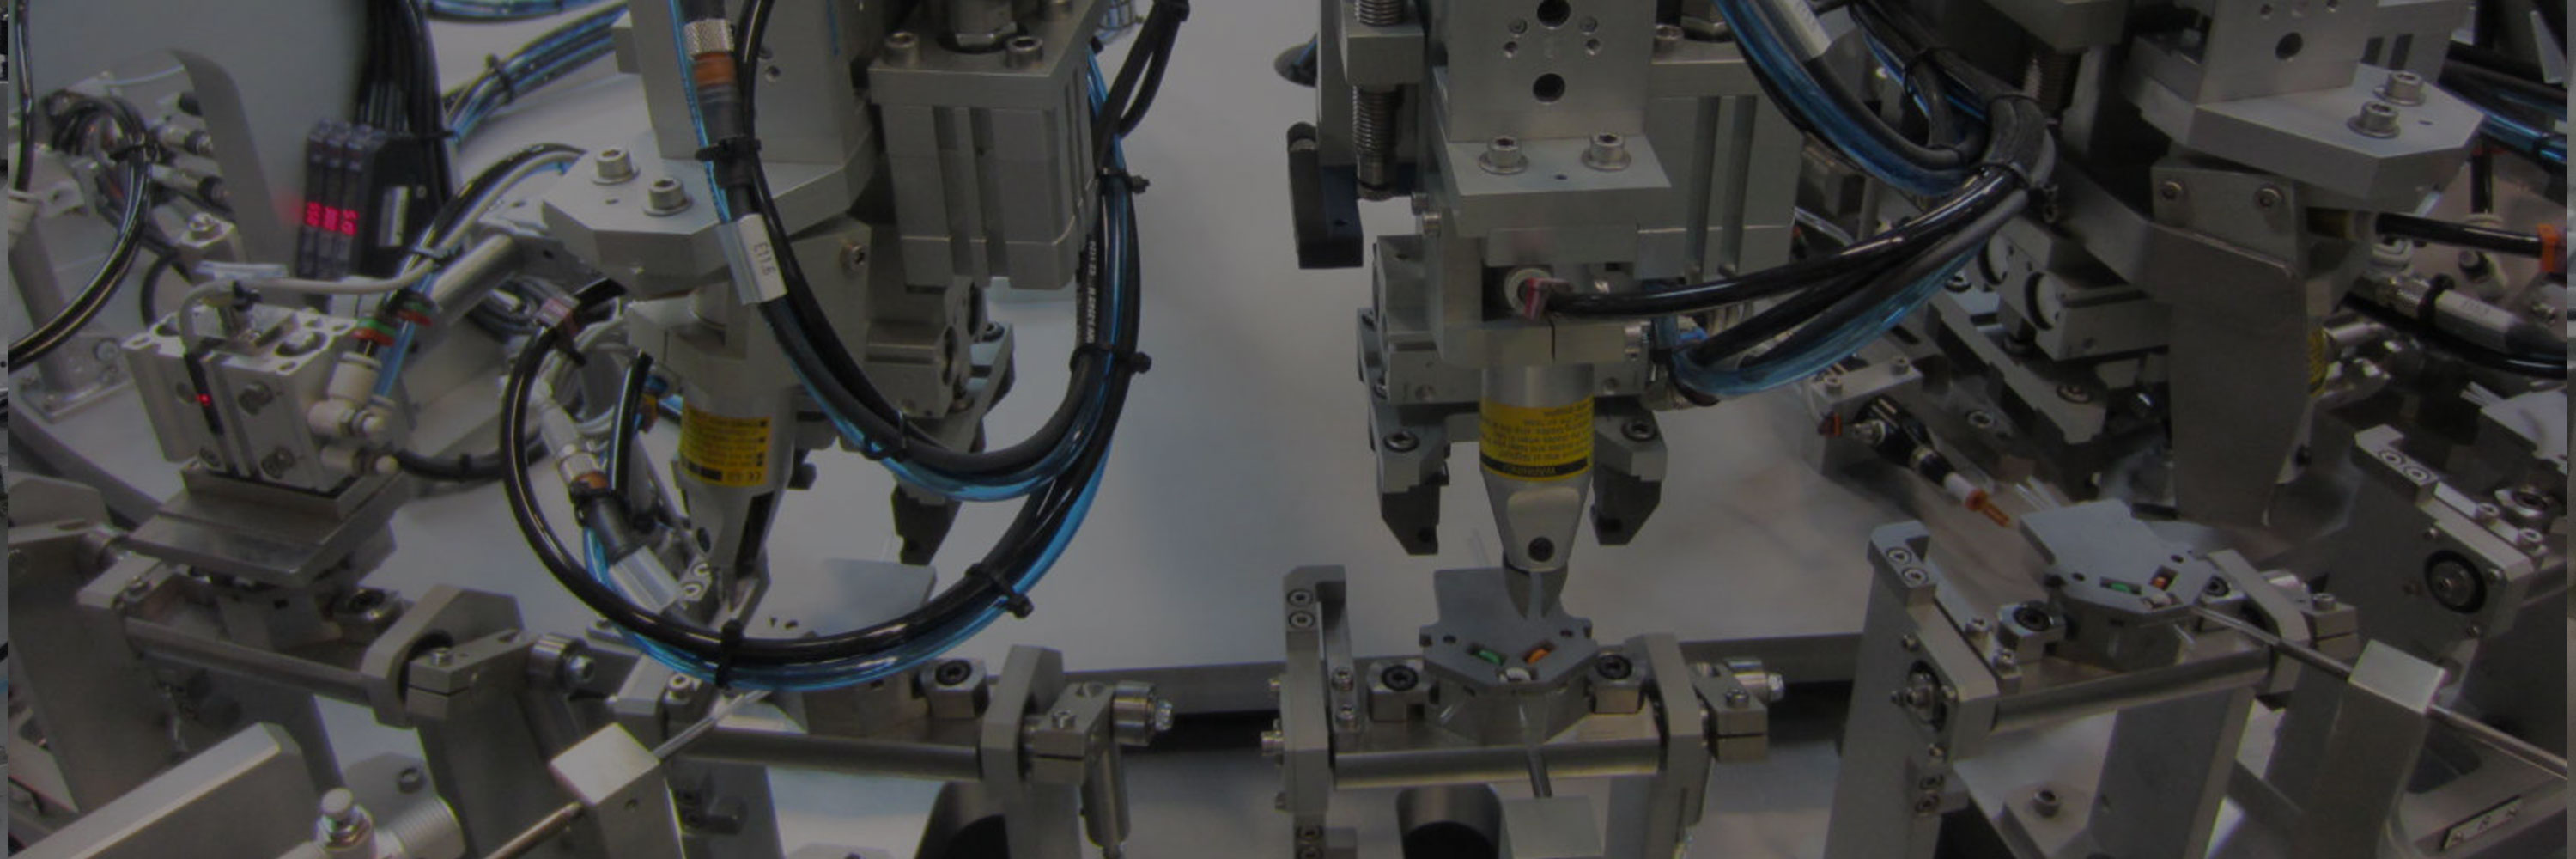 Design assembly machines: manufacture of high-speed special-purpose machines